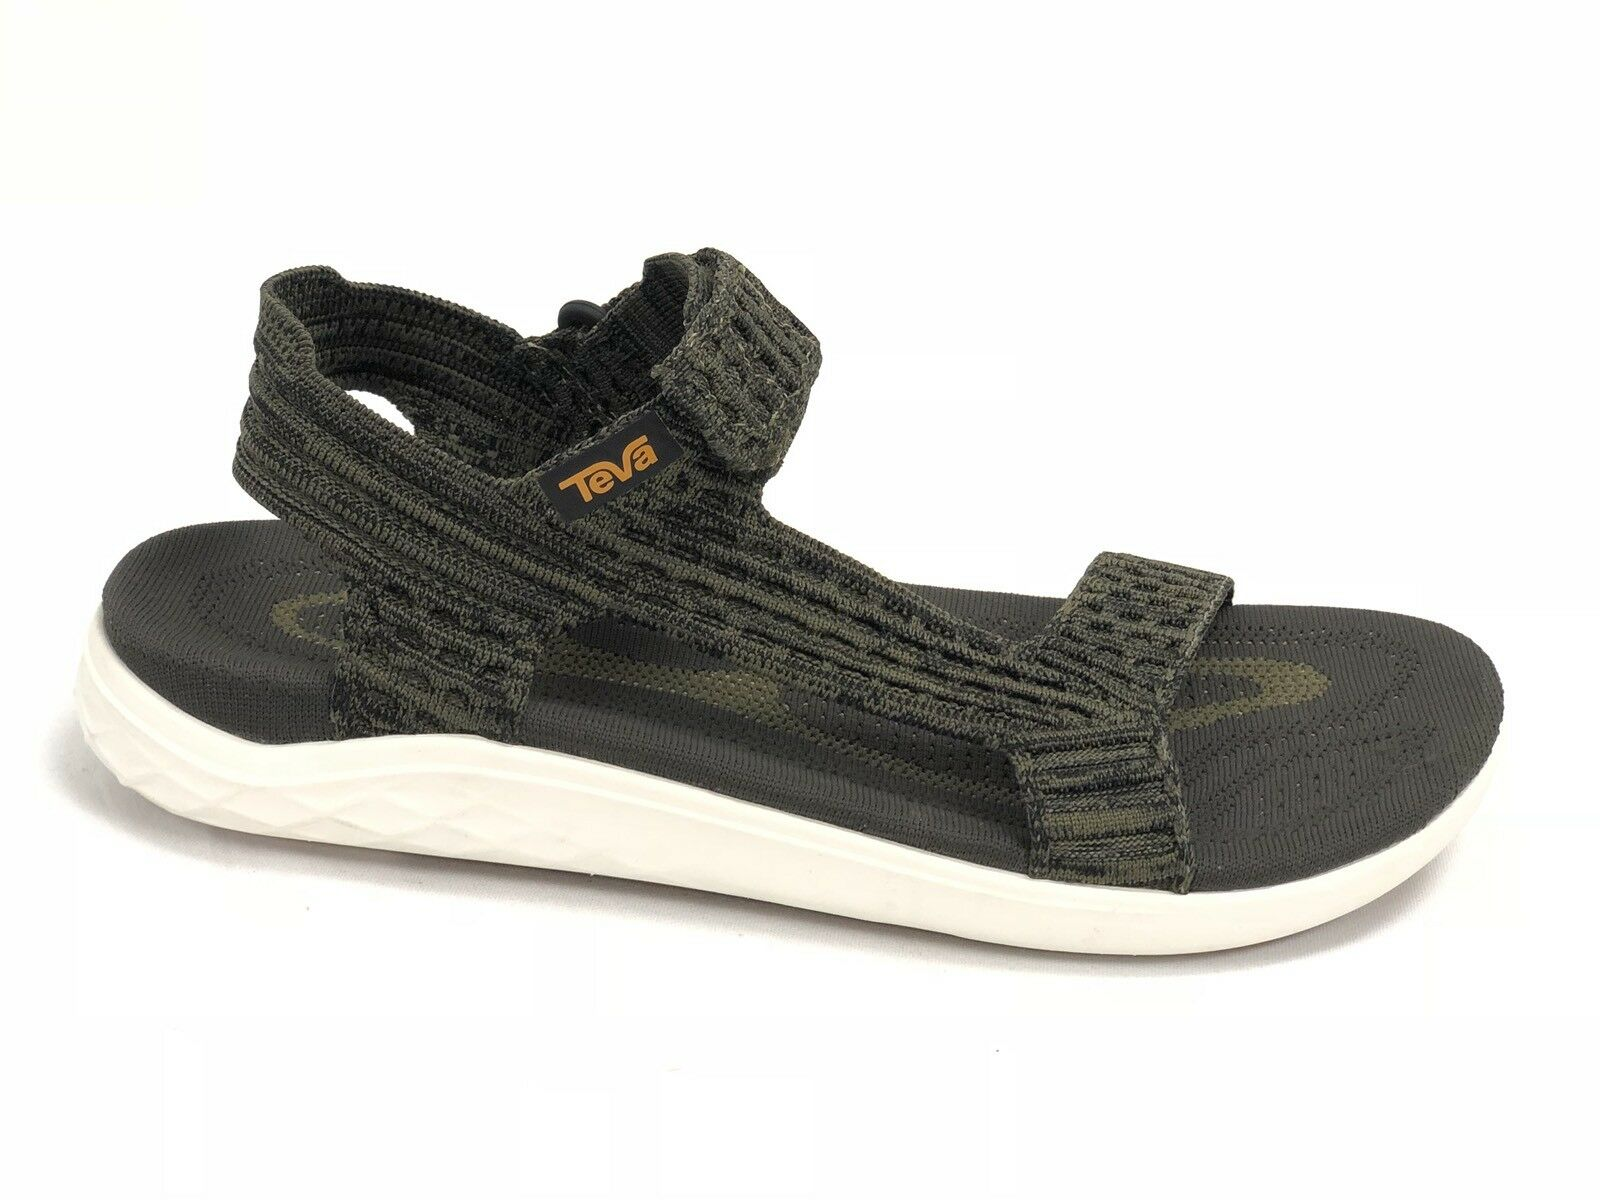 TEVA OLIVE TERRA FLOAT 2 KNIT UNIVERSAL STRAPPY SANDALS Men's Shoes 1091592 New